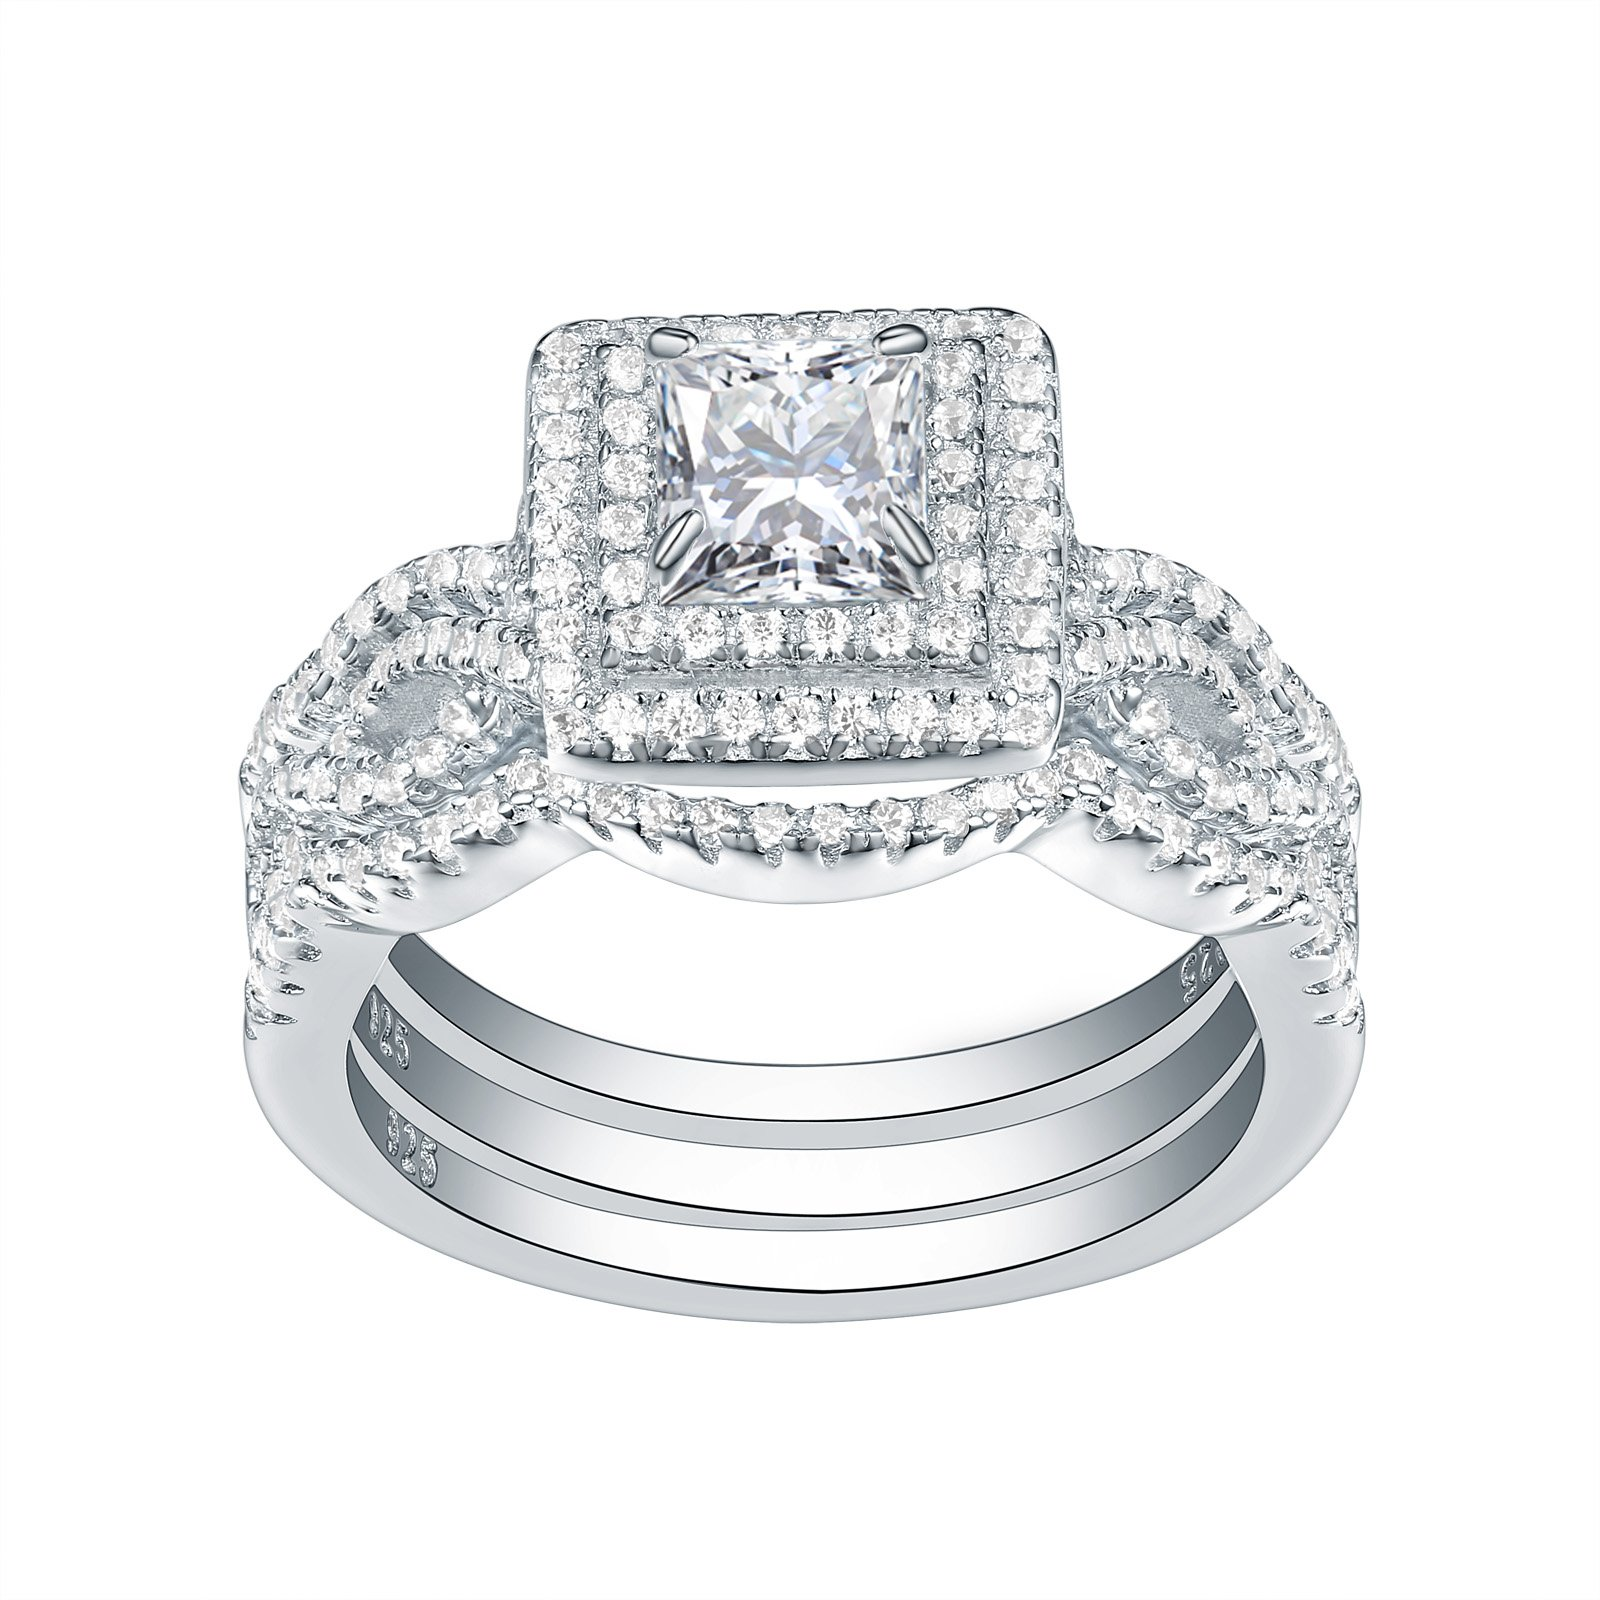 Newshe Wedding Engagement Ring Set For Women 925 Sterling Silver 3pcs 2.4Ct Princess White Cz Size 10